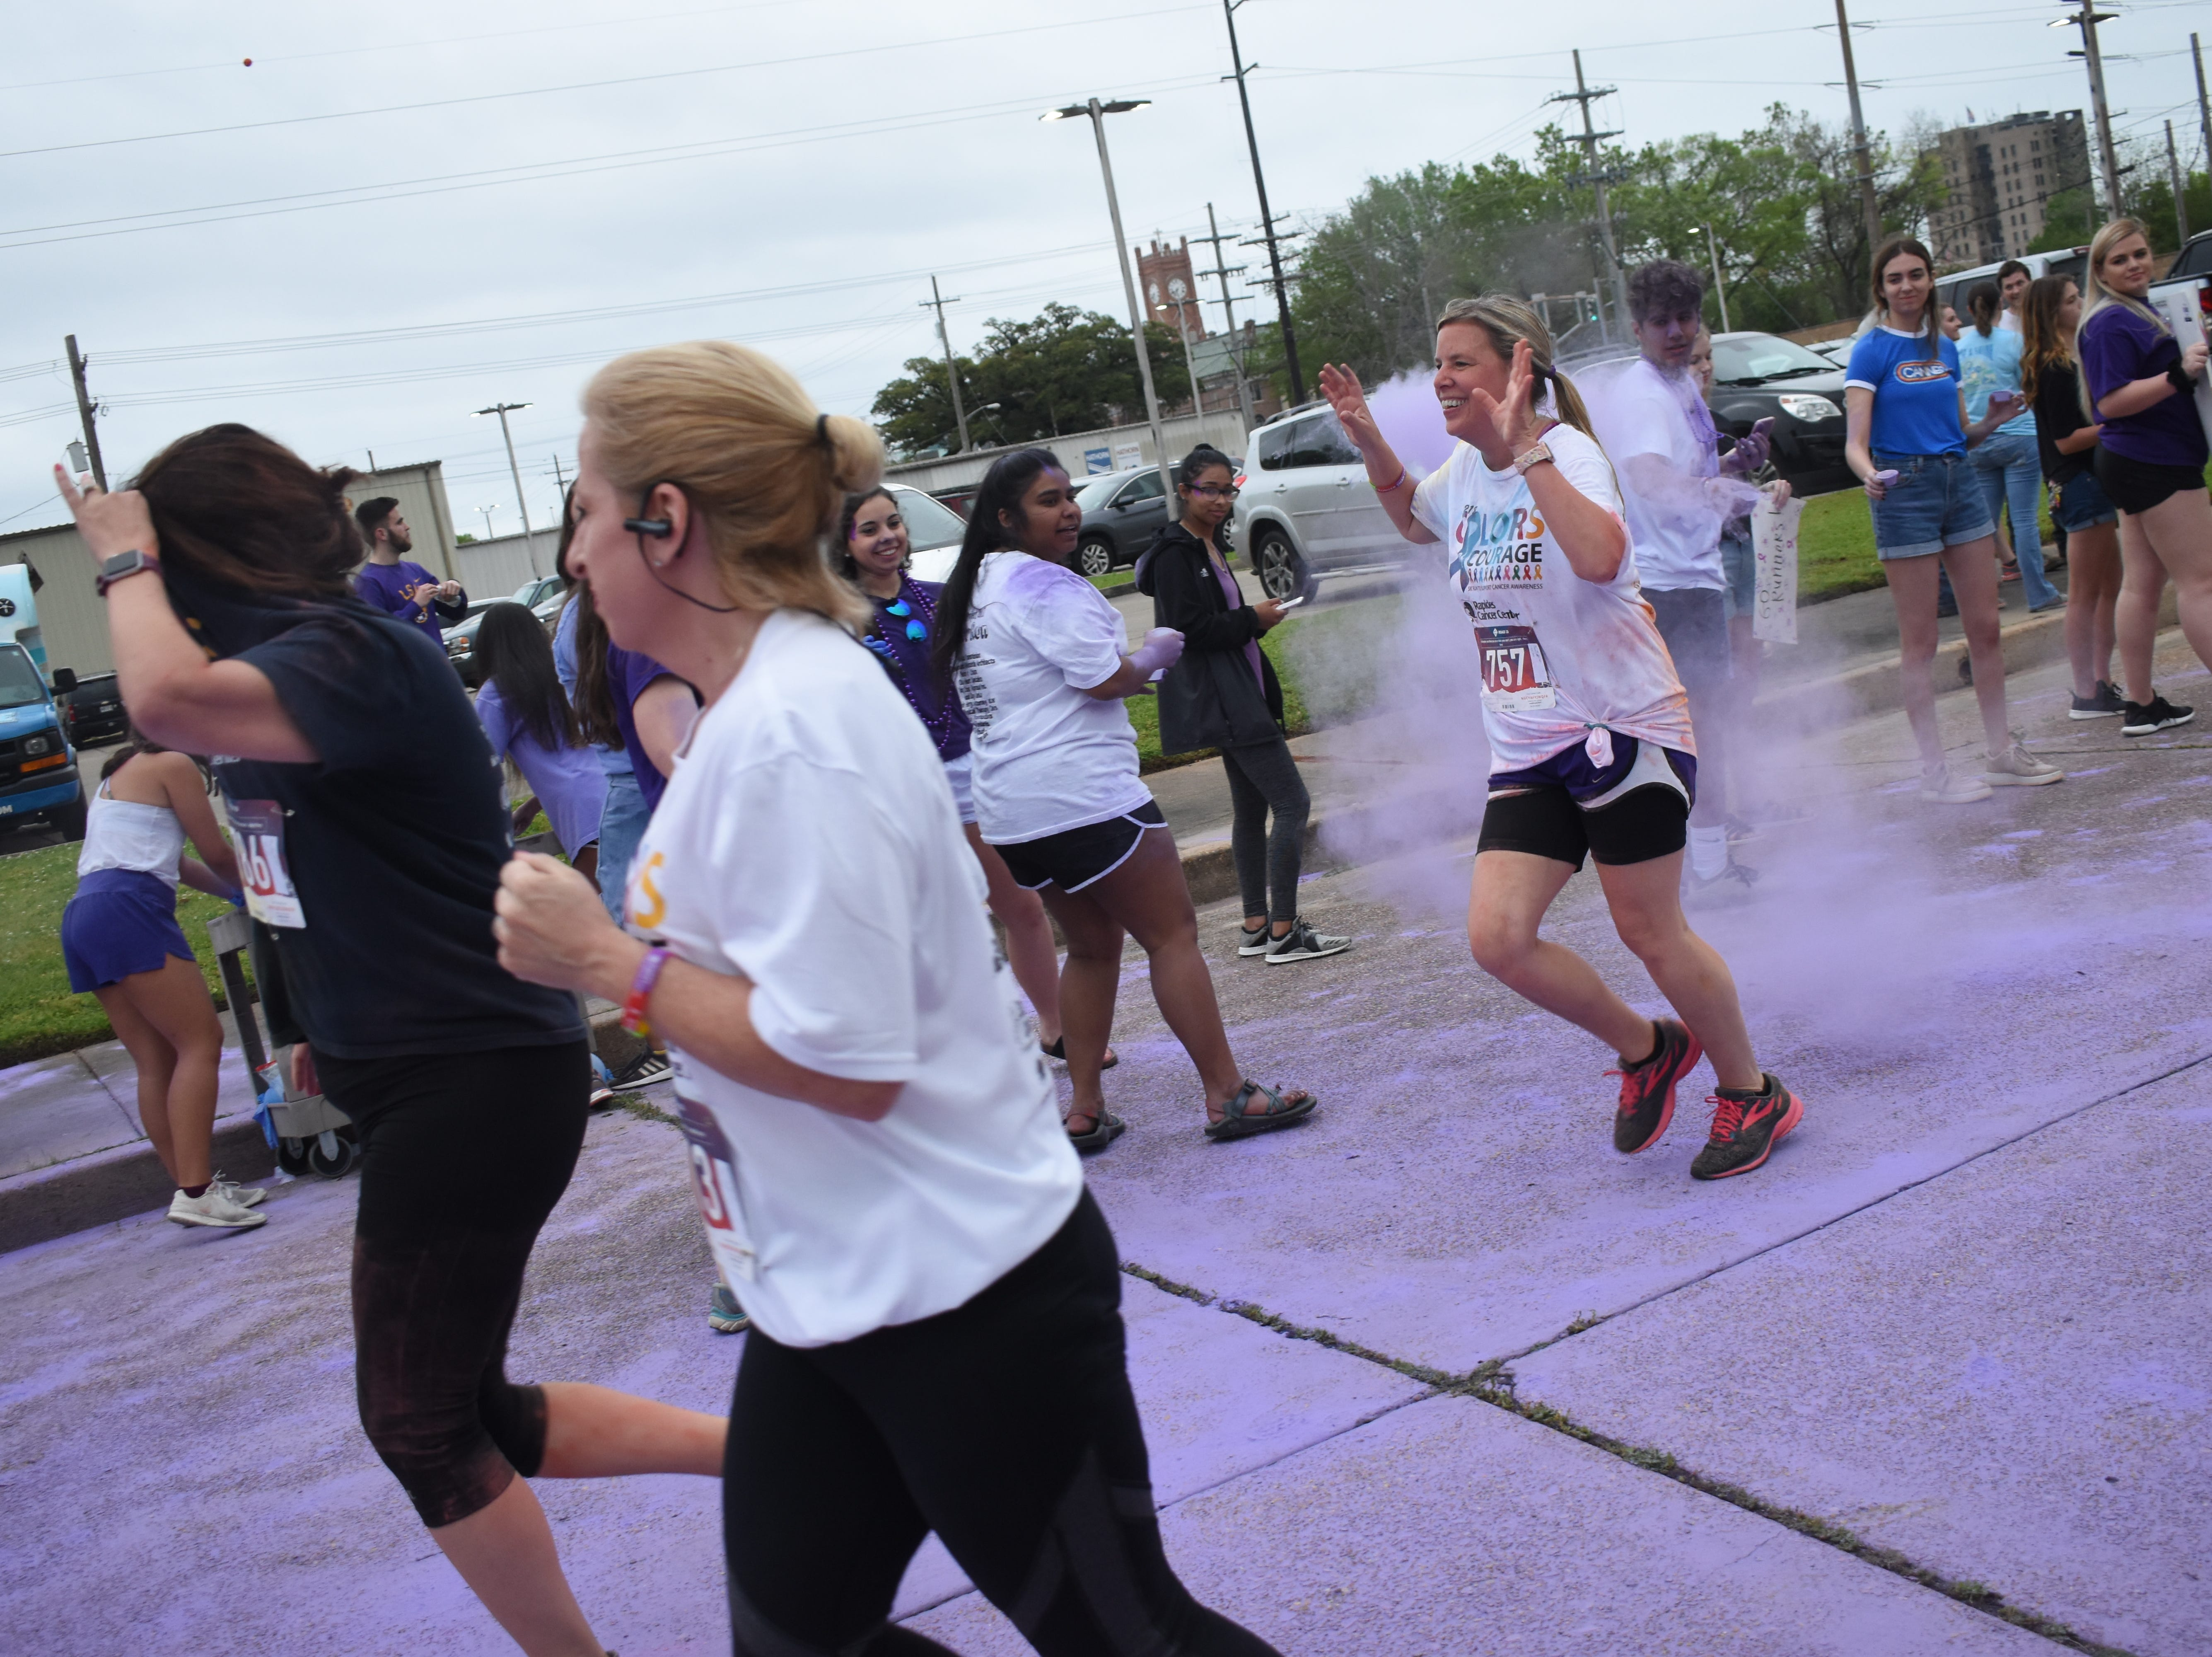 Over 200 walkers and runners participated in the Rapides Cancer CenterÕs 4th annual Colors of Courage 5K and Color Run Friday, April 5, 2019 in downtown Alexandria. Funds raised by Colors of Courage is donated to the American Cancer Society. Over $17,000 has been donated from the last three Colors of Courage 5K and Color Run.